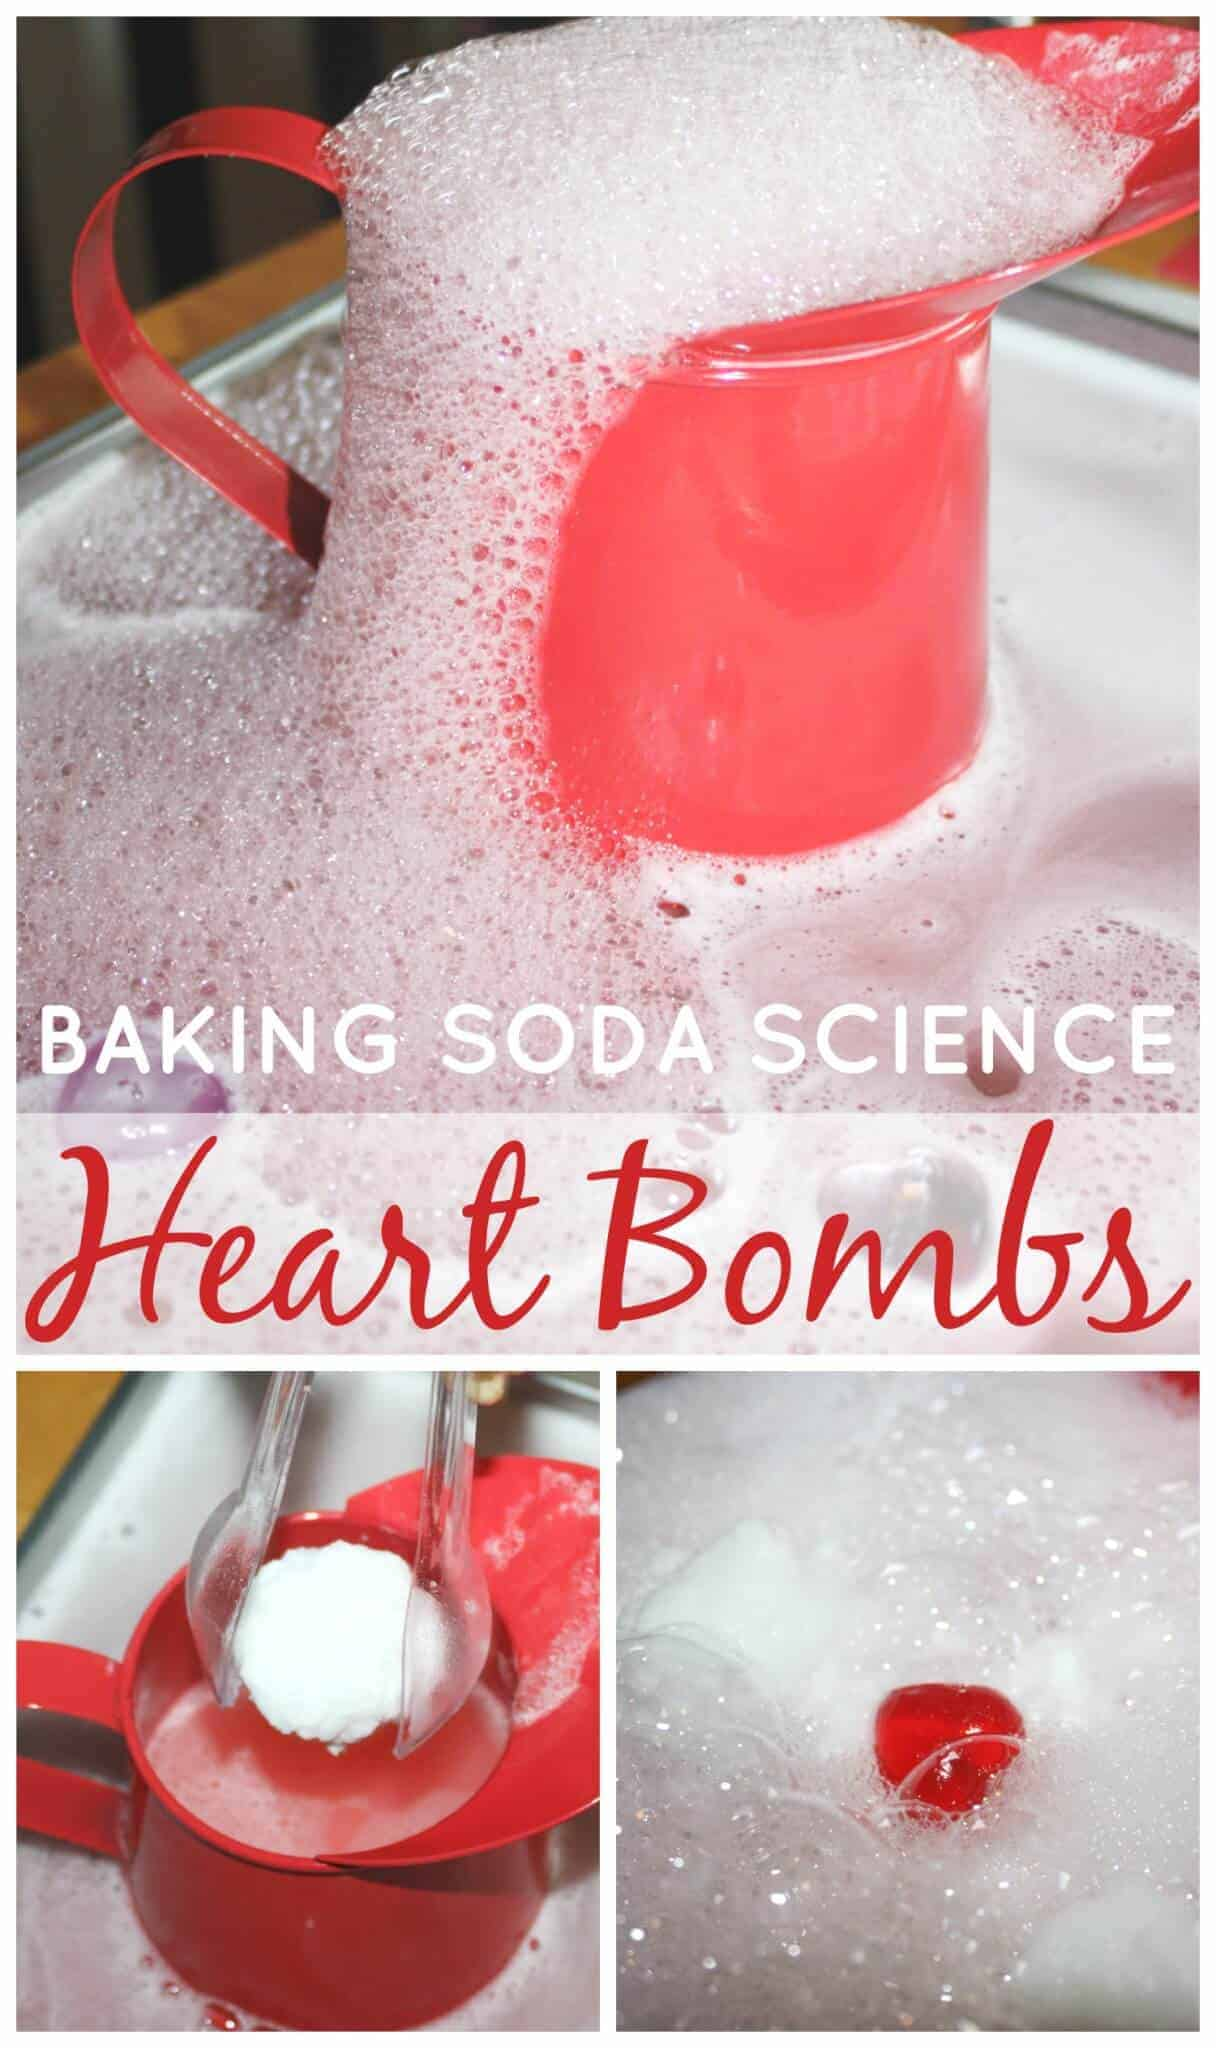 Hearts Baking Soda Science Valentines Activity